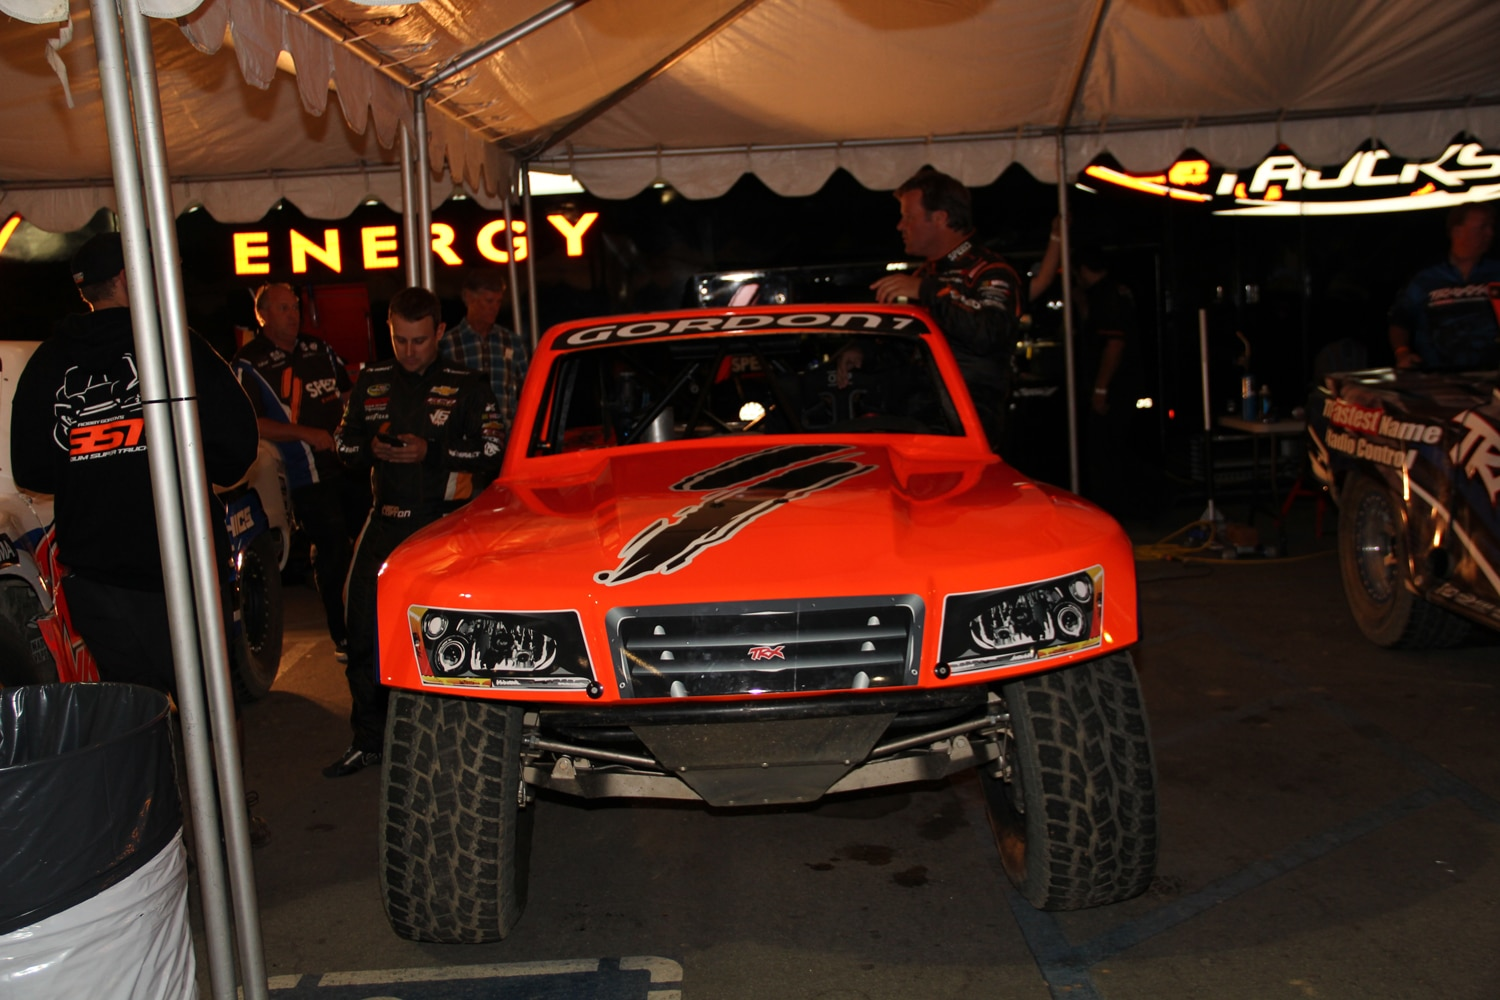 Stadium Super Trucks at SSSS  10  Robby Gordon SST Truck in pits.JPG